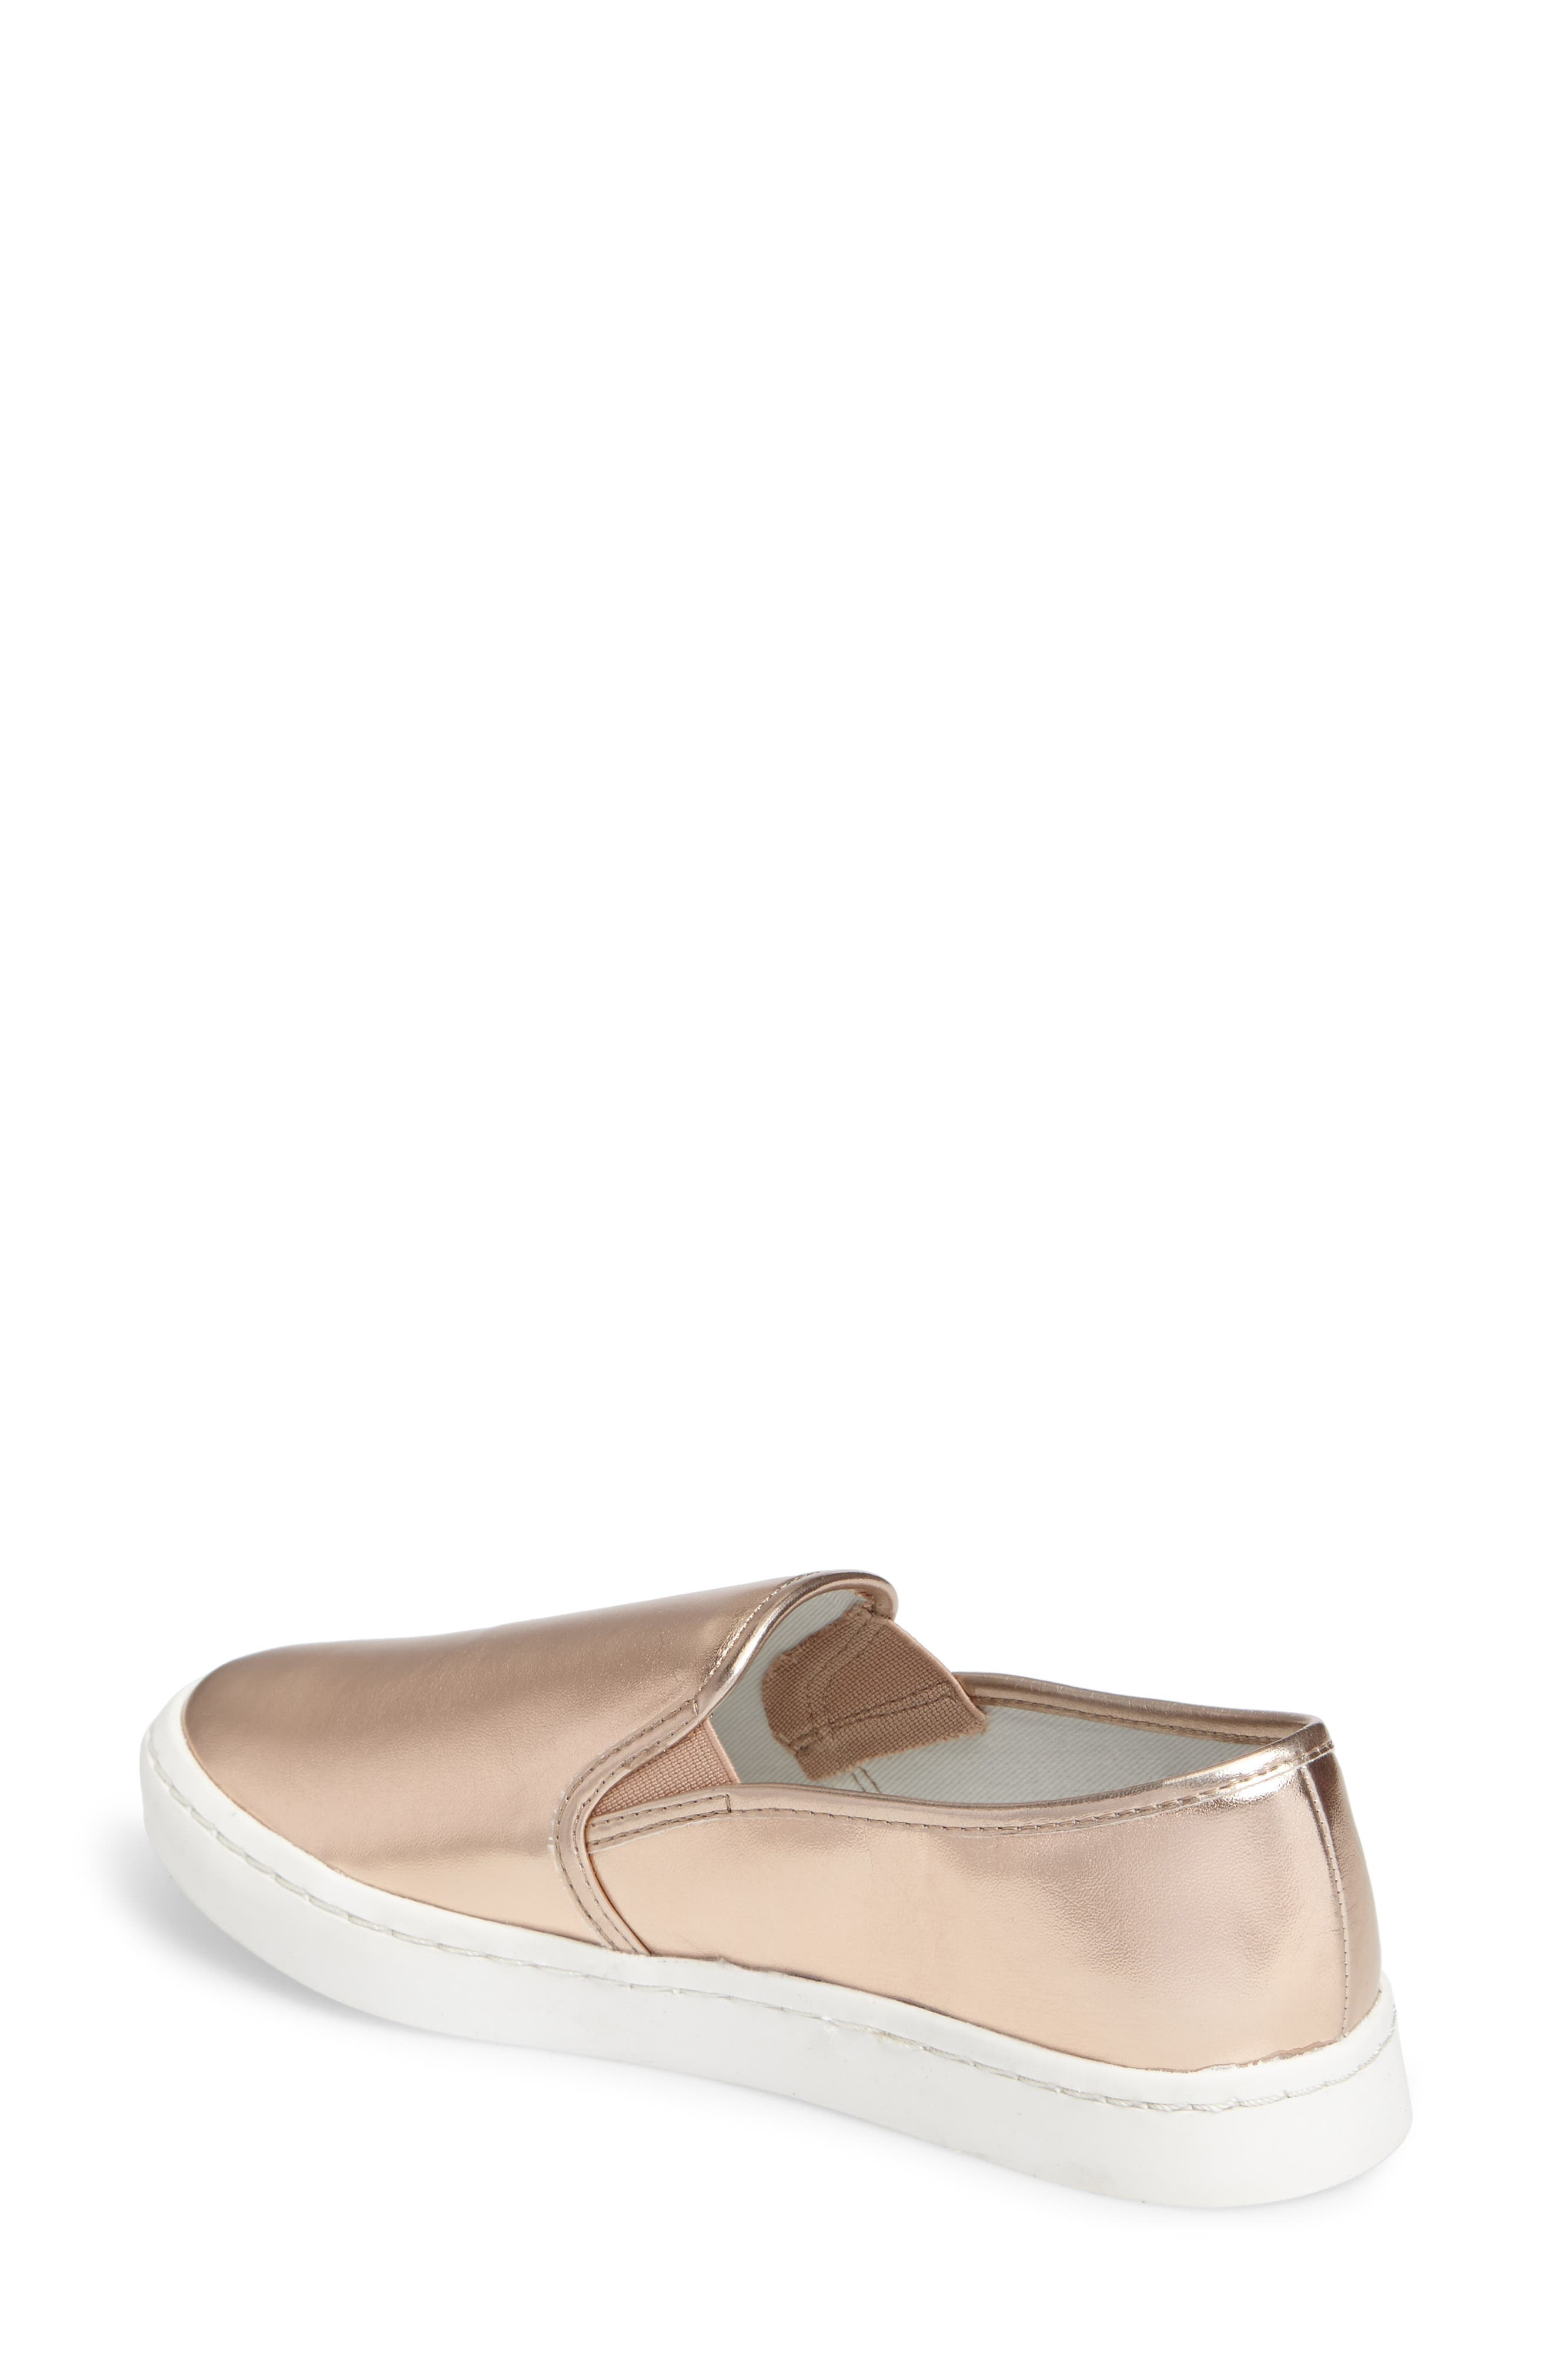 'Twiny' Slip-On Sneaker,                             Alternate thumbnail 2, color,                             Rose Gold Faux Leather